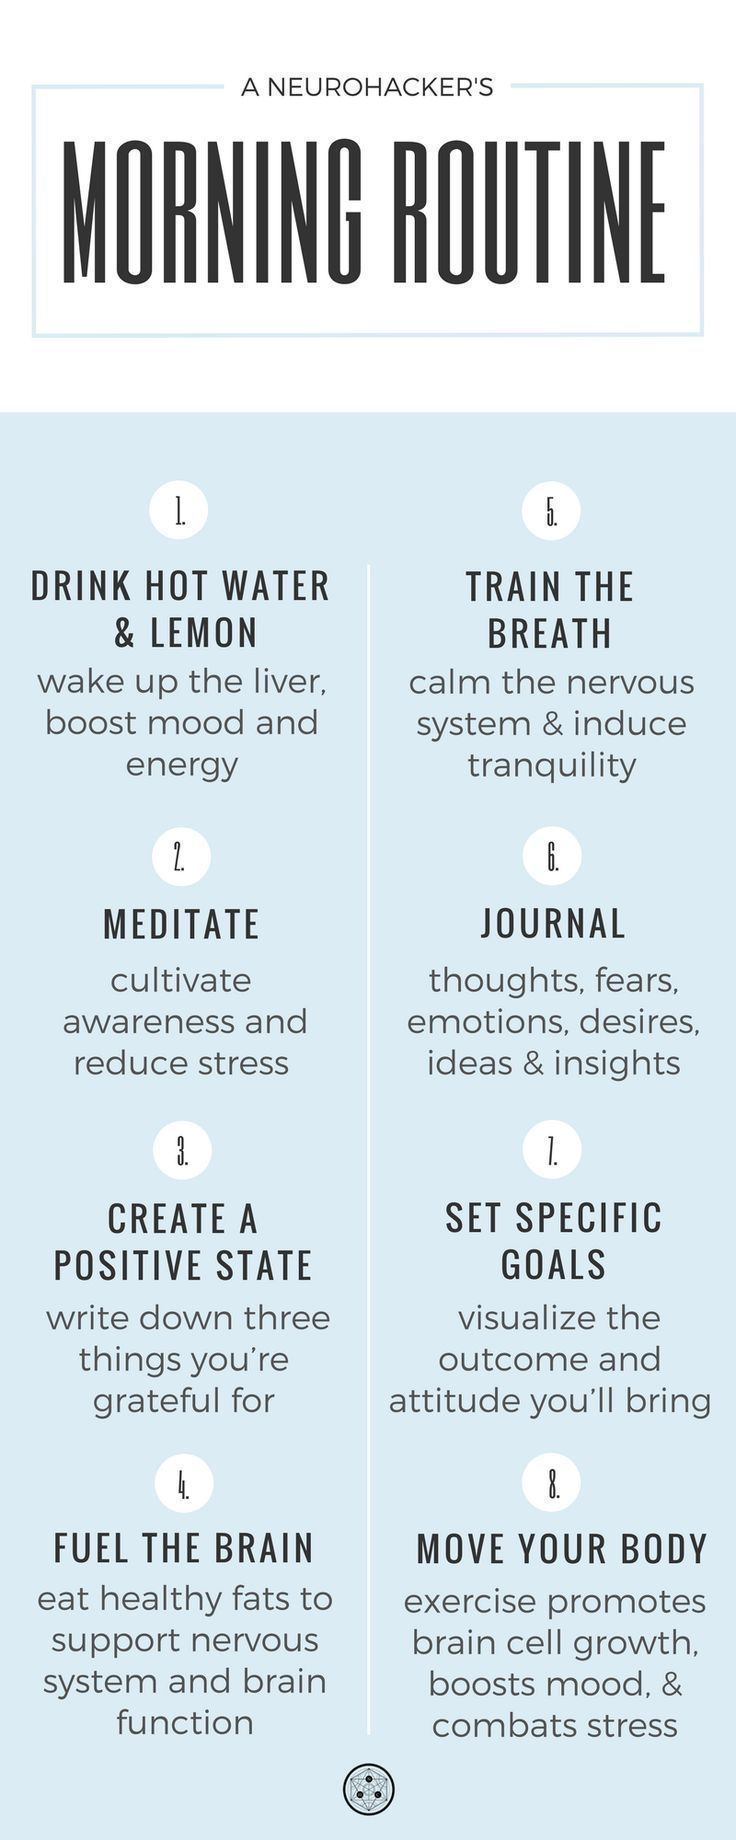 Set your day up for a win by creating a self-care morning routine. #neurohacker #DailyMeditationTipsDude #AntiagingAloeVera #morningroutine